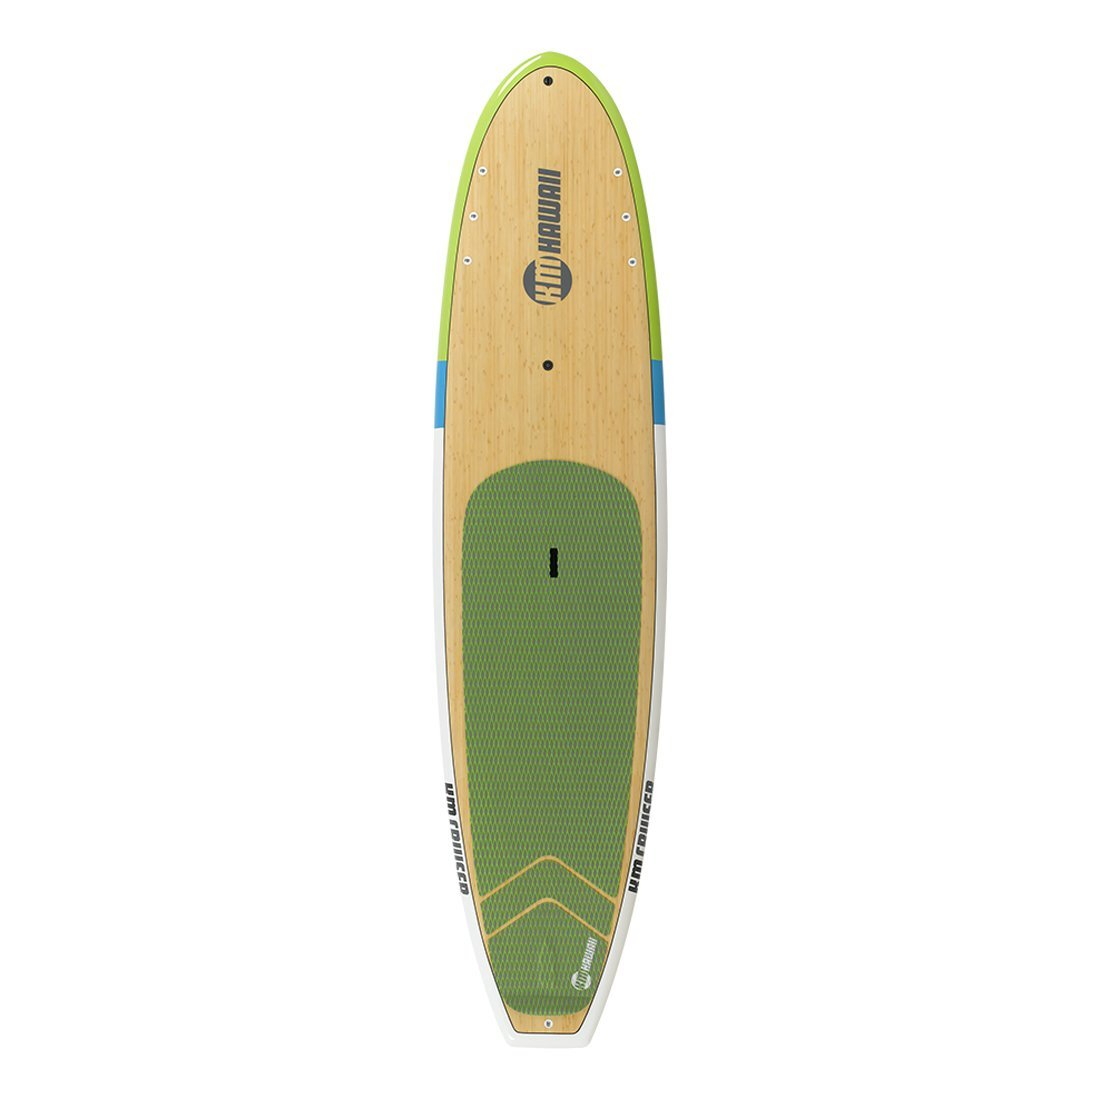 KM Hawaii Bamboo Cruiser SUP - All Around Standup Paddle Board Paddle Boards 4theoutdoors Canada SUP outdoors